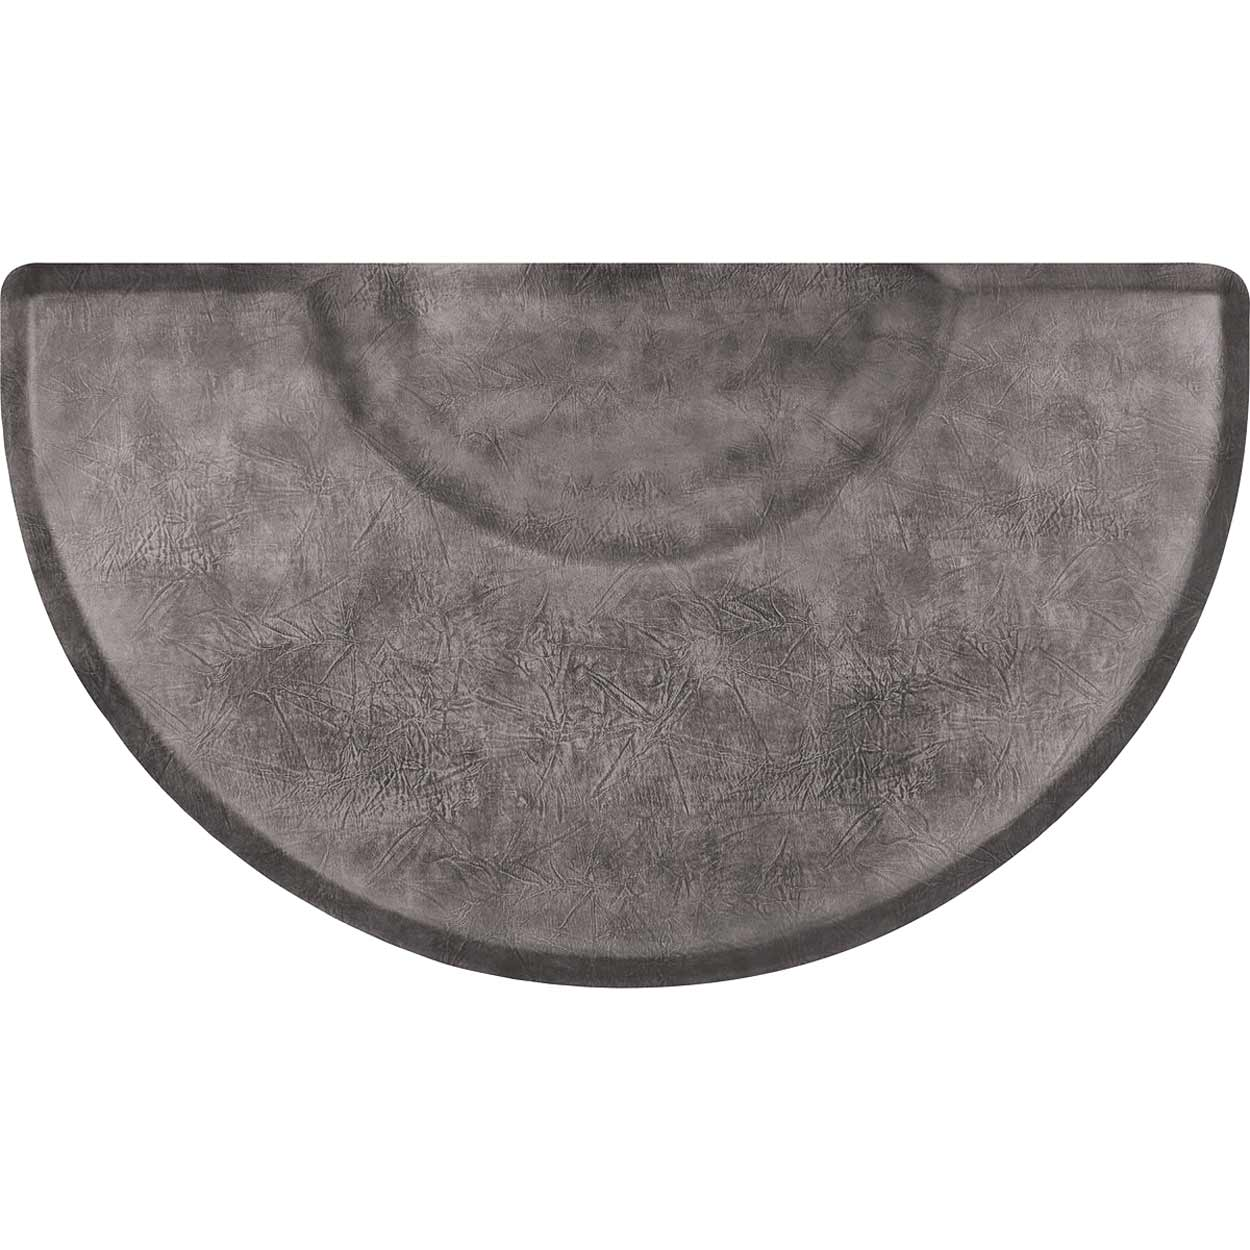 3x5 Vintage Leather Semicircle Anti-Fatigue Salon Mat alternative product image 1